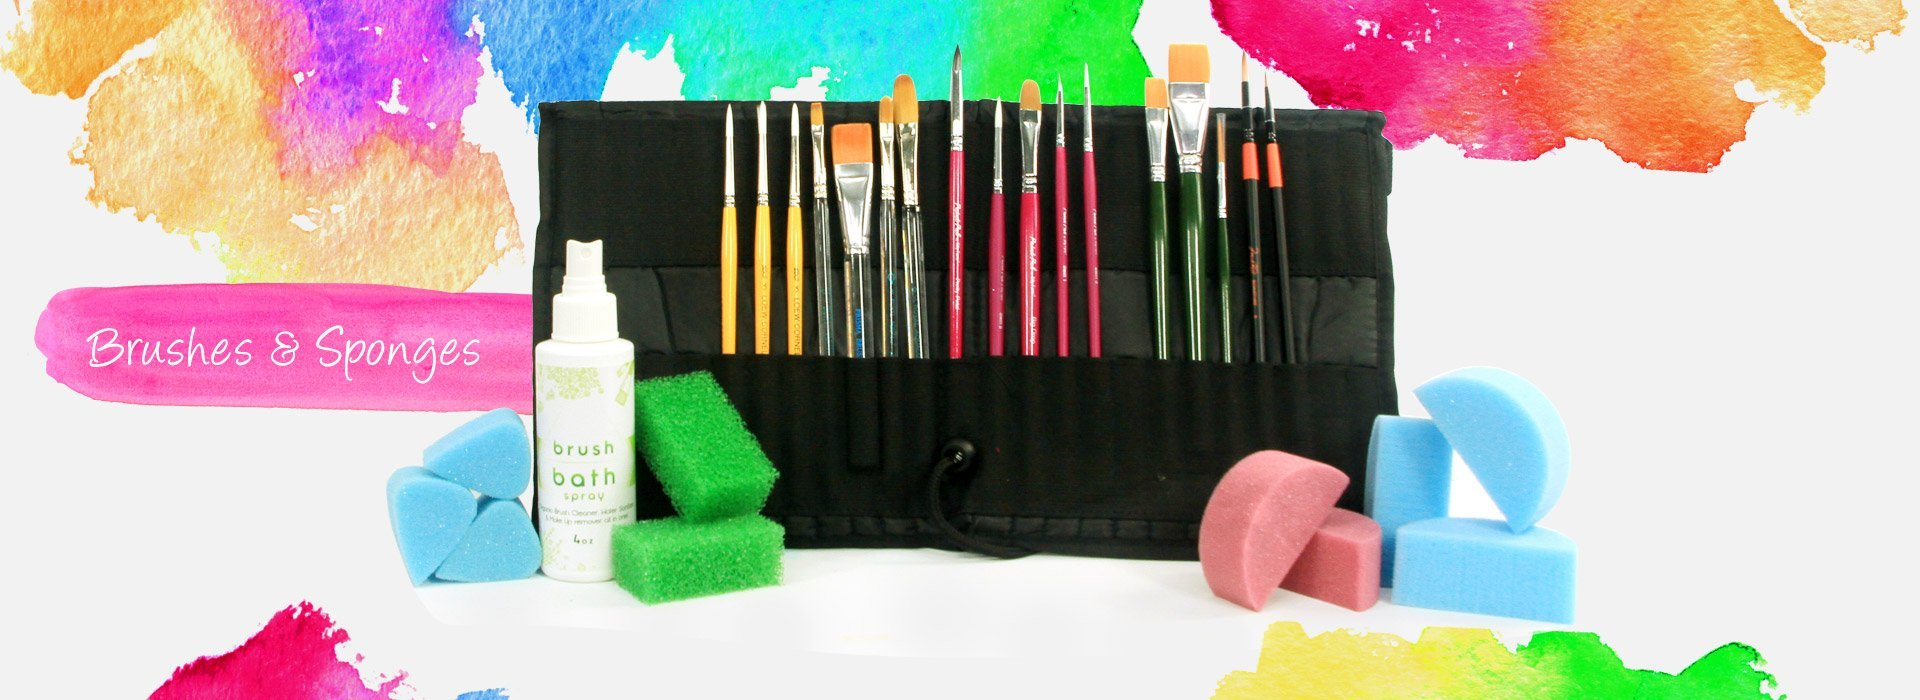 Brushes & Sponges | Silly Farm Supplies